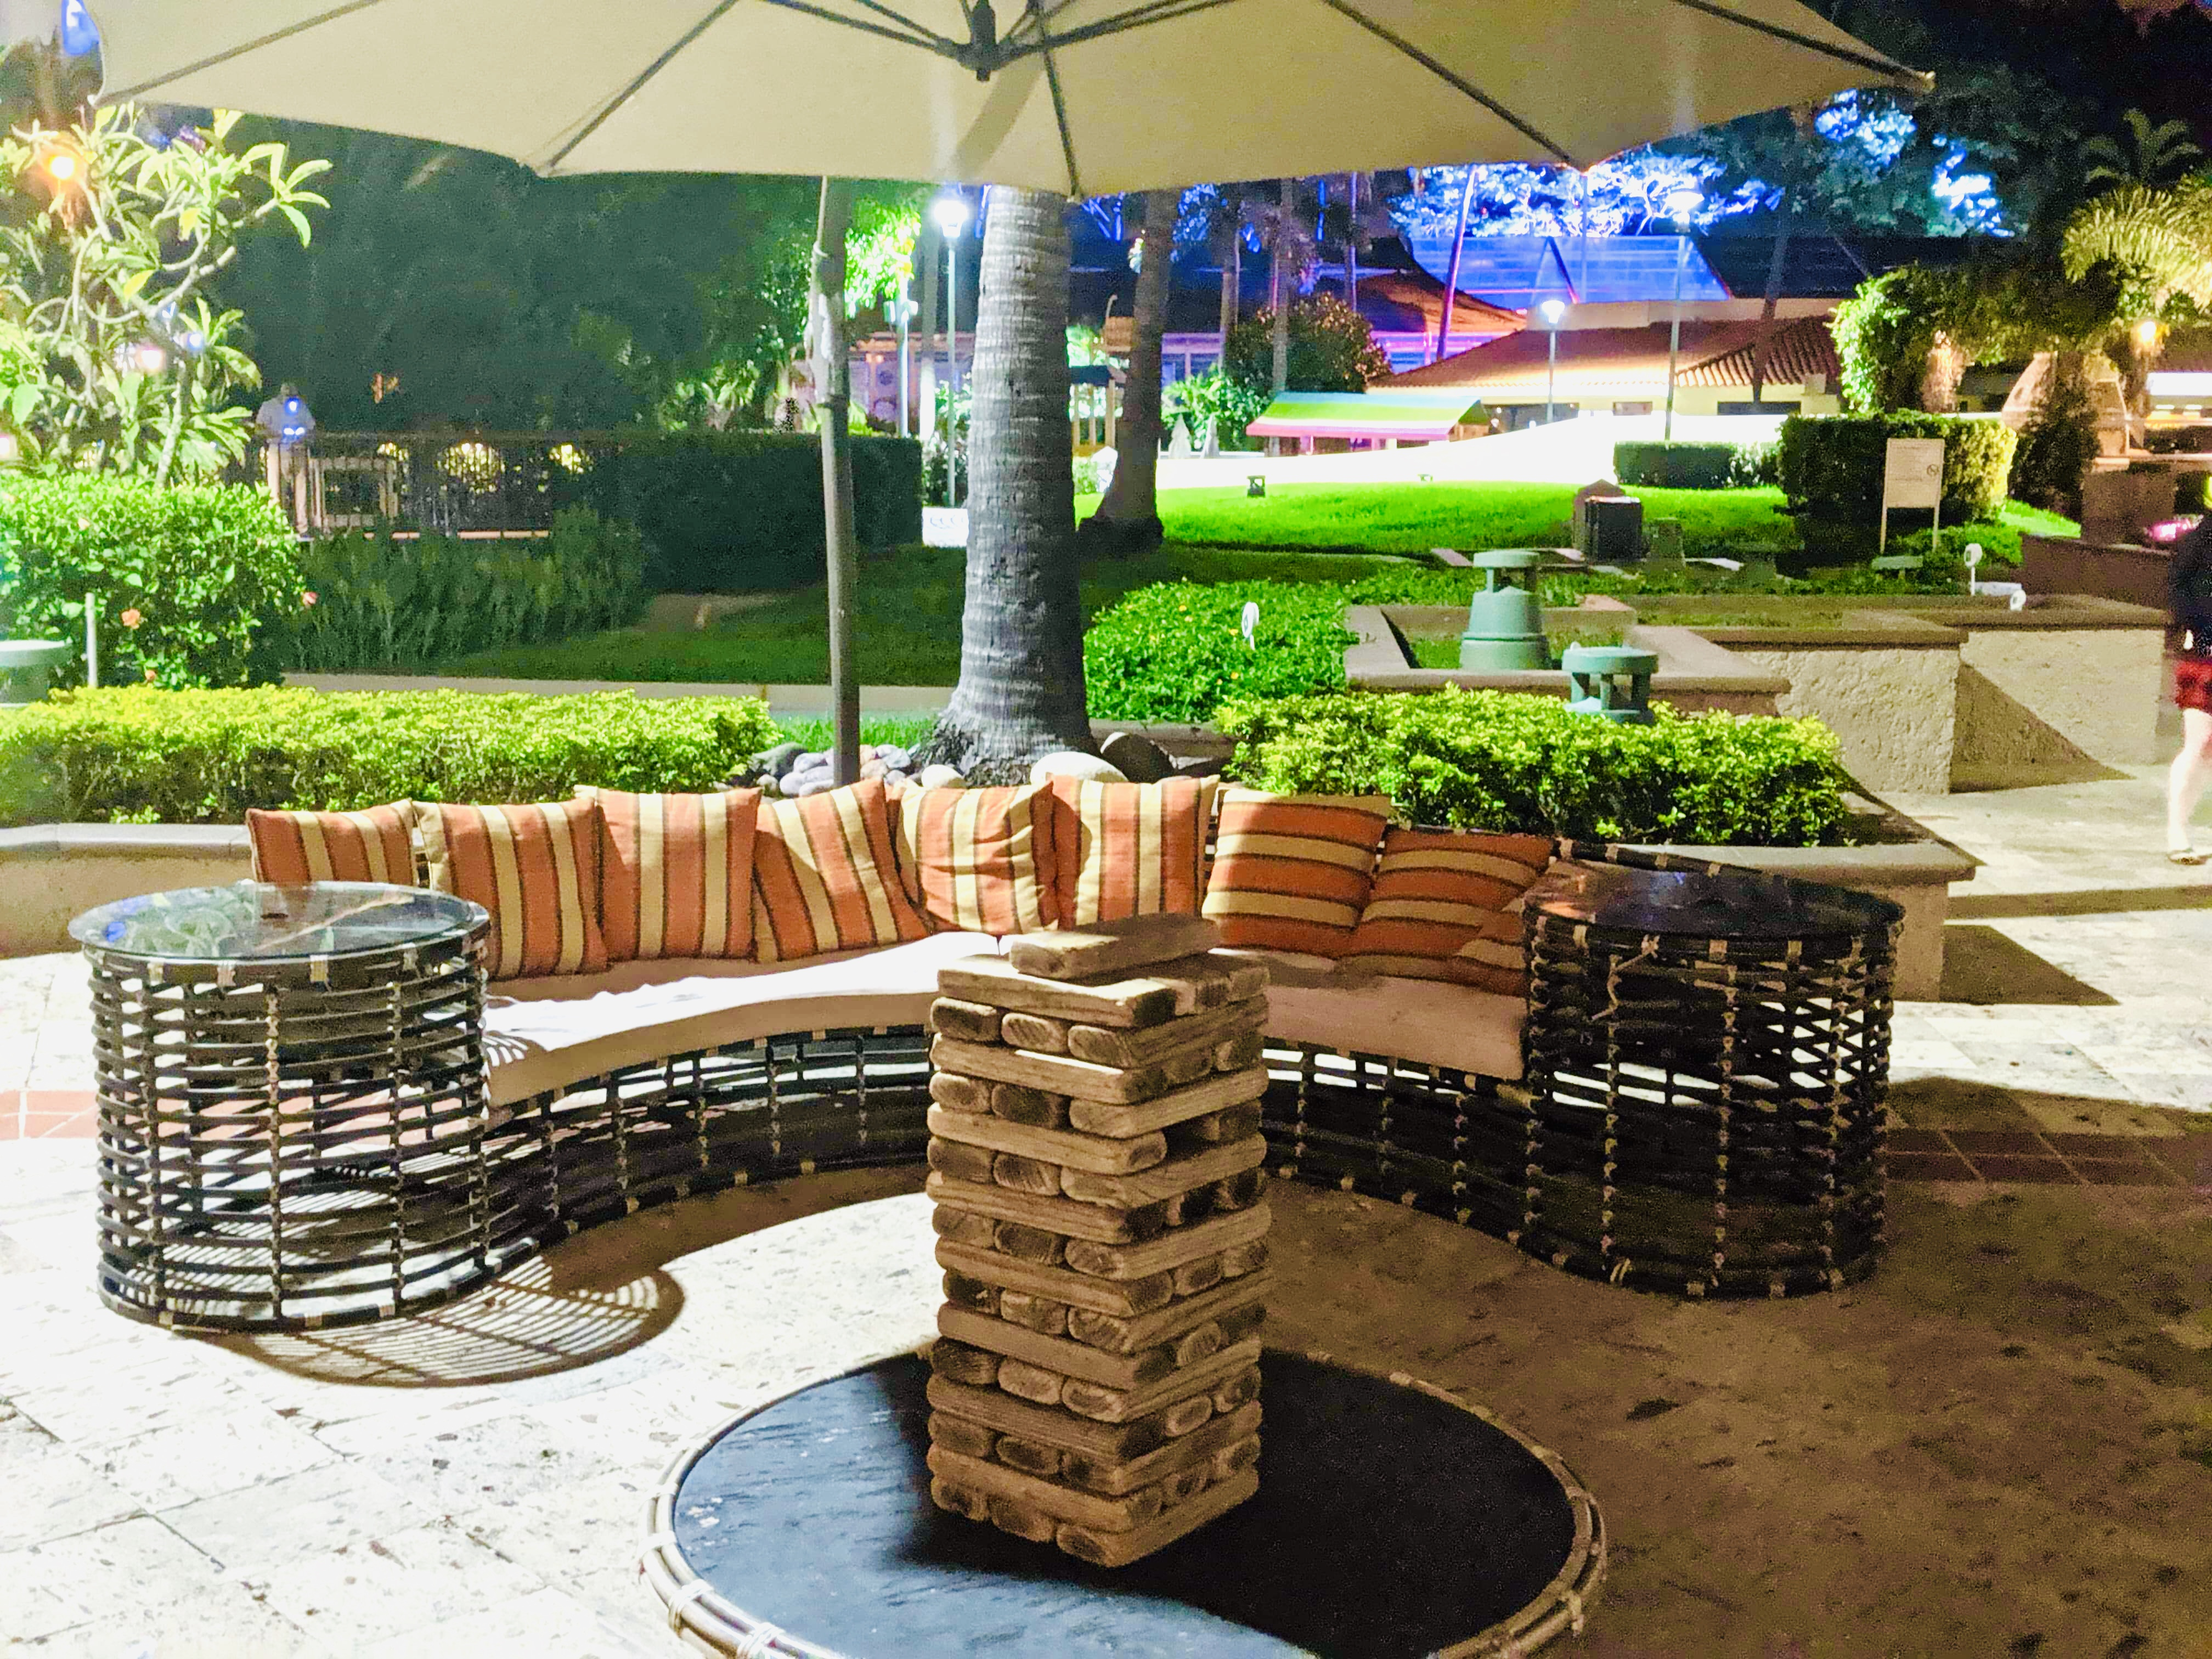 A seating area outside with a giant jenga game set up on a table